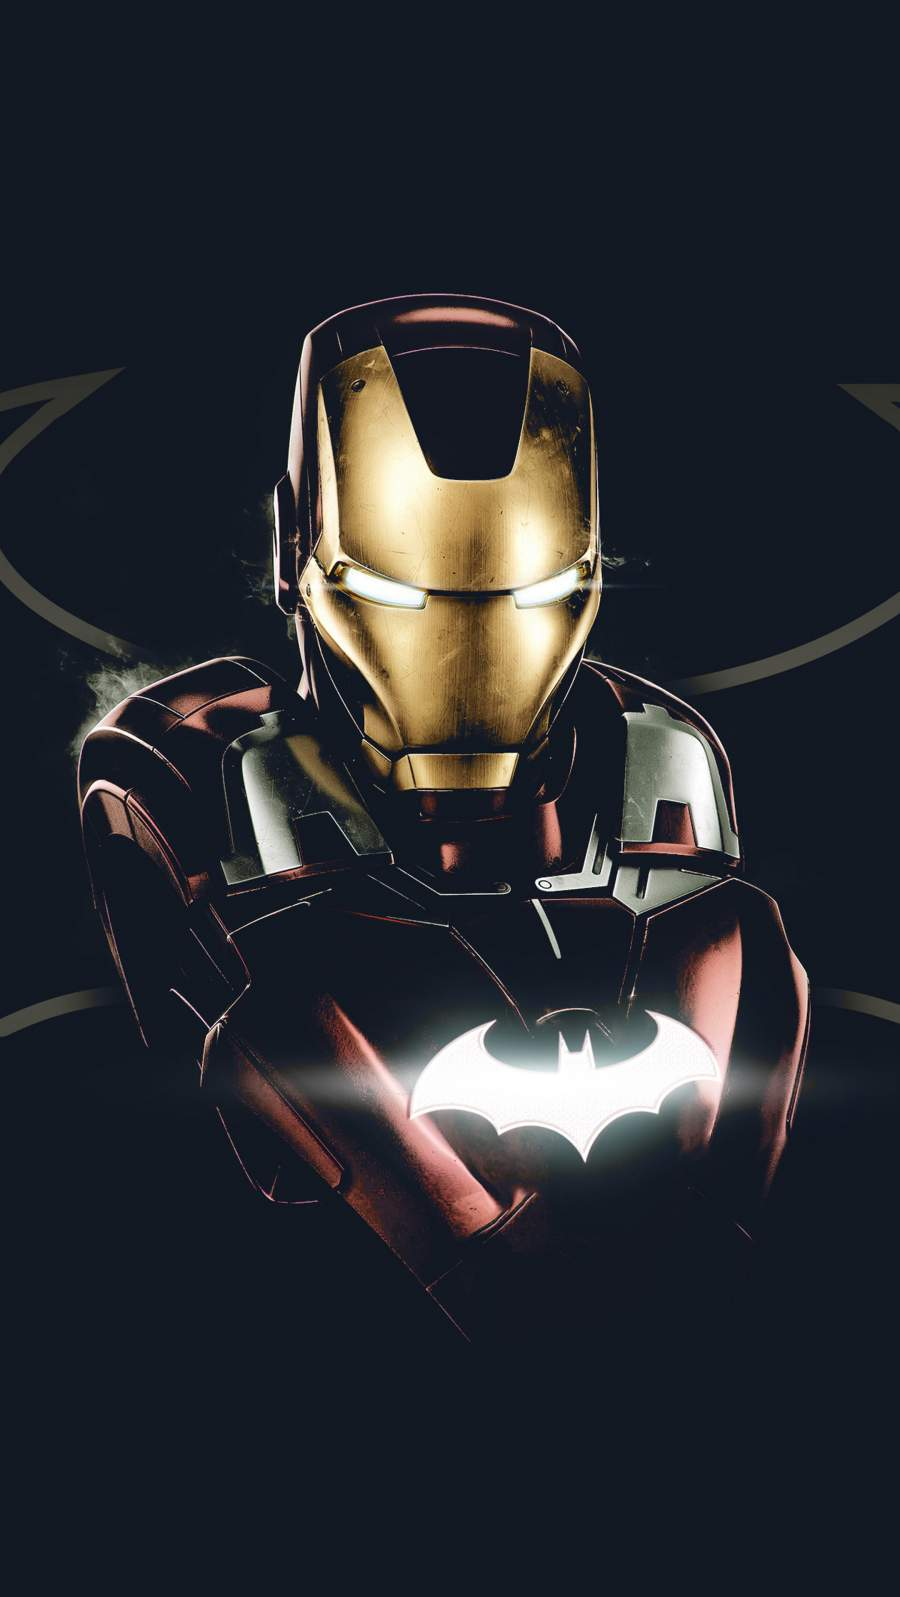 Iron Bat Superhero iPhone Wallpaper